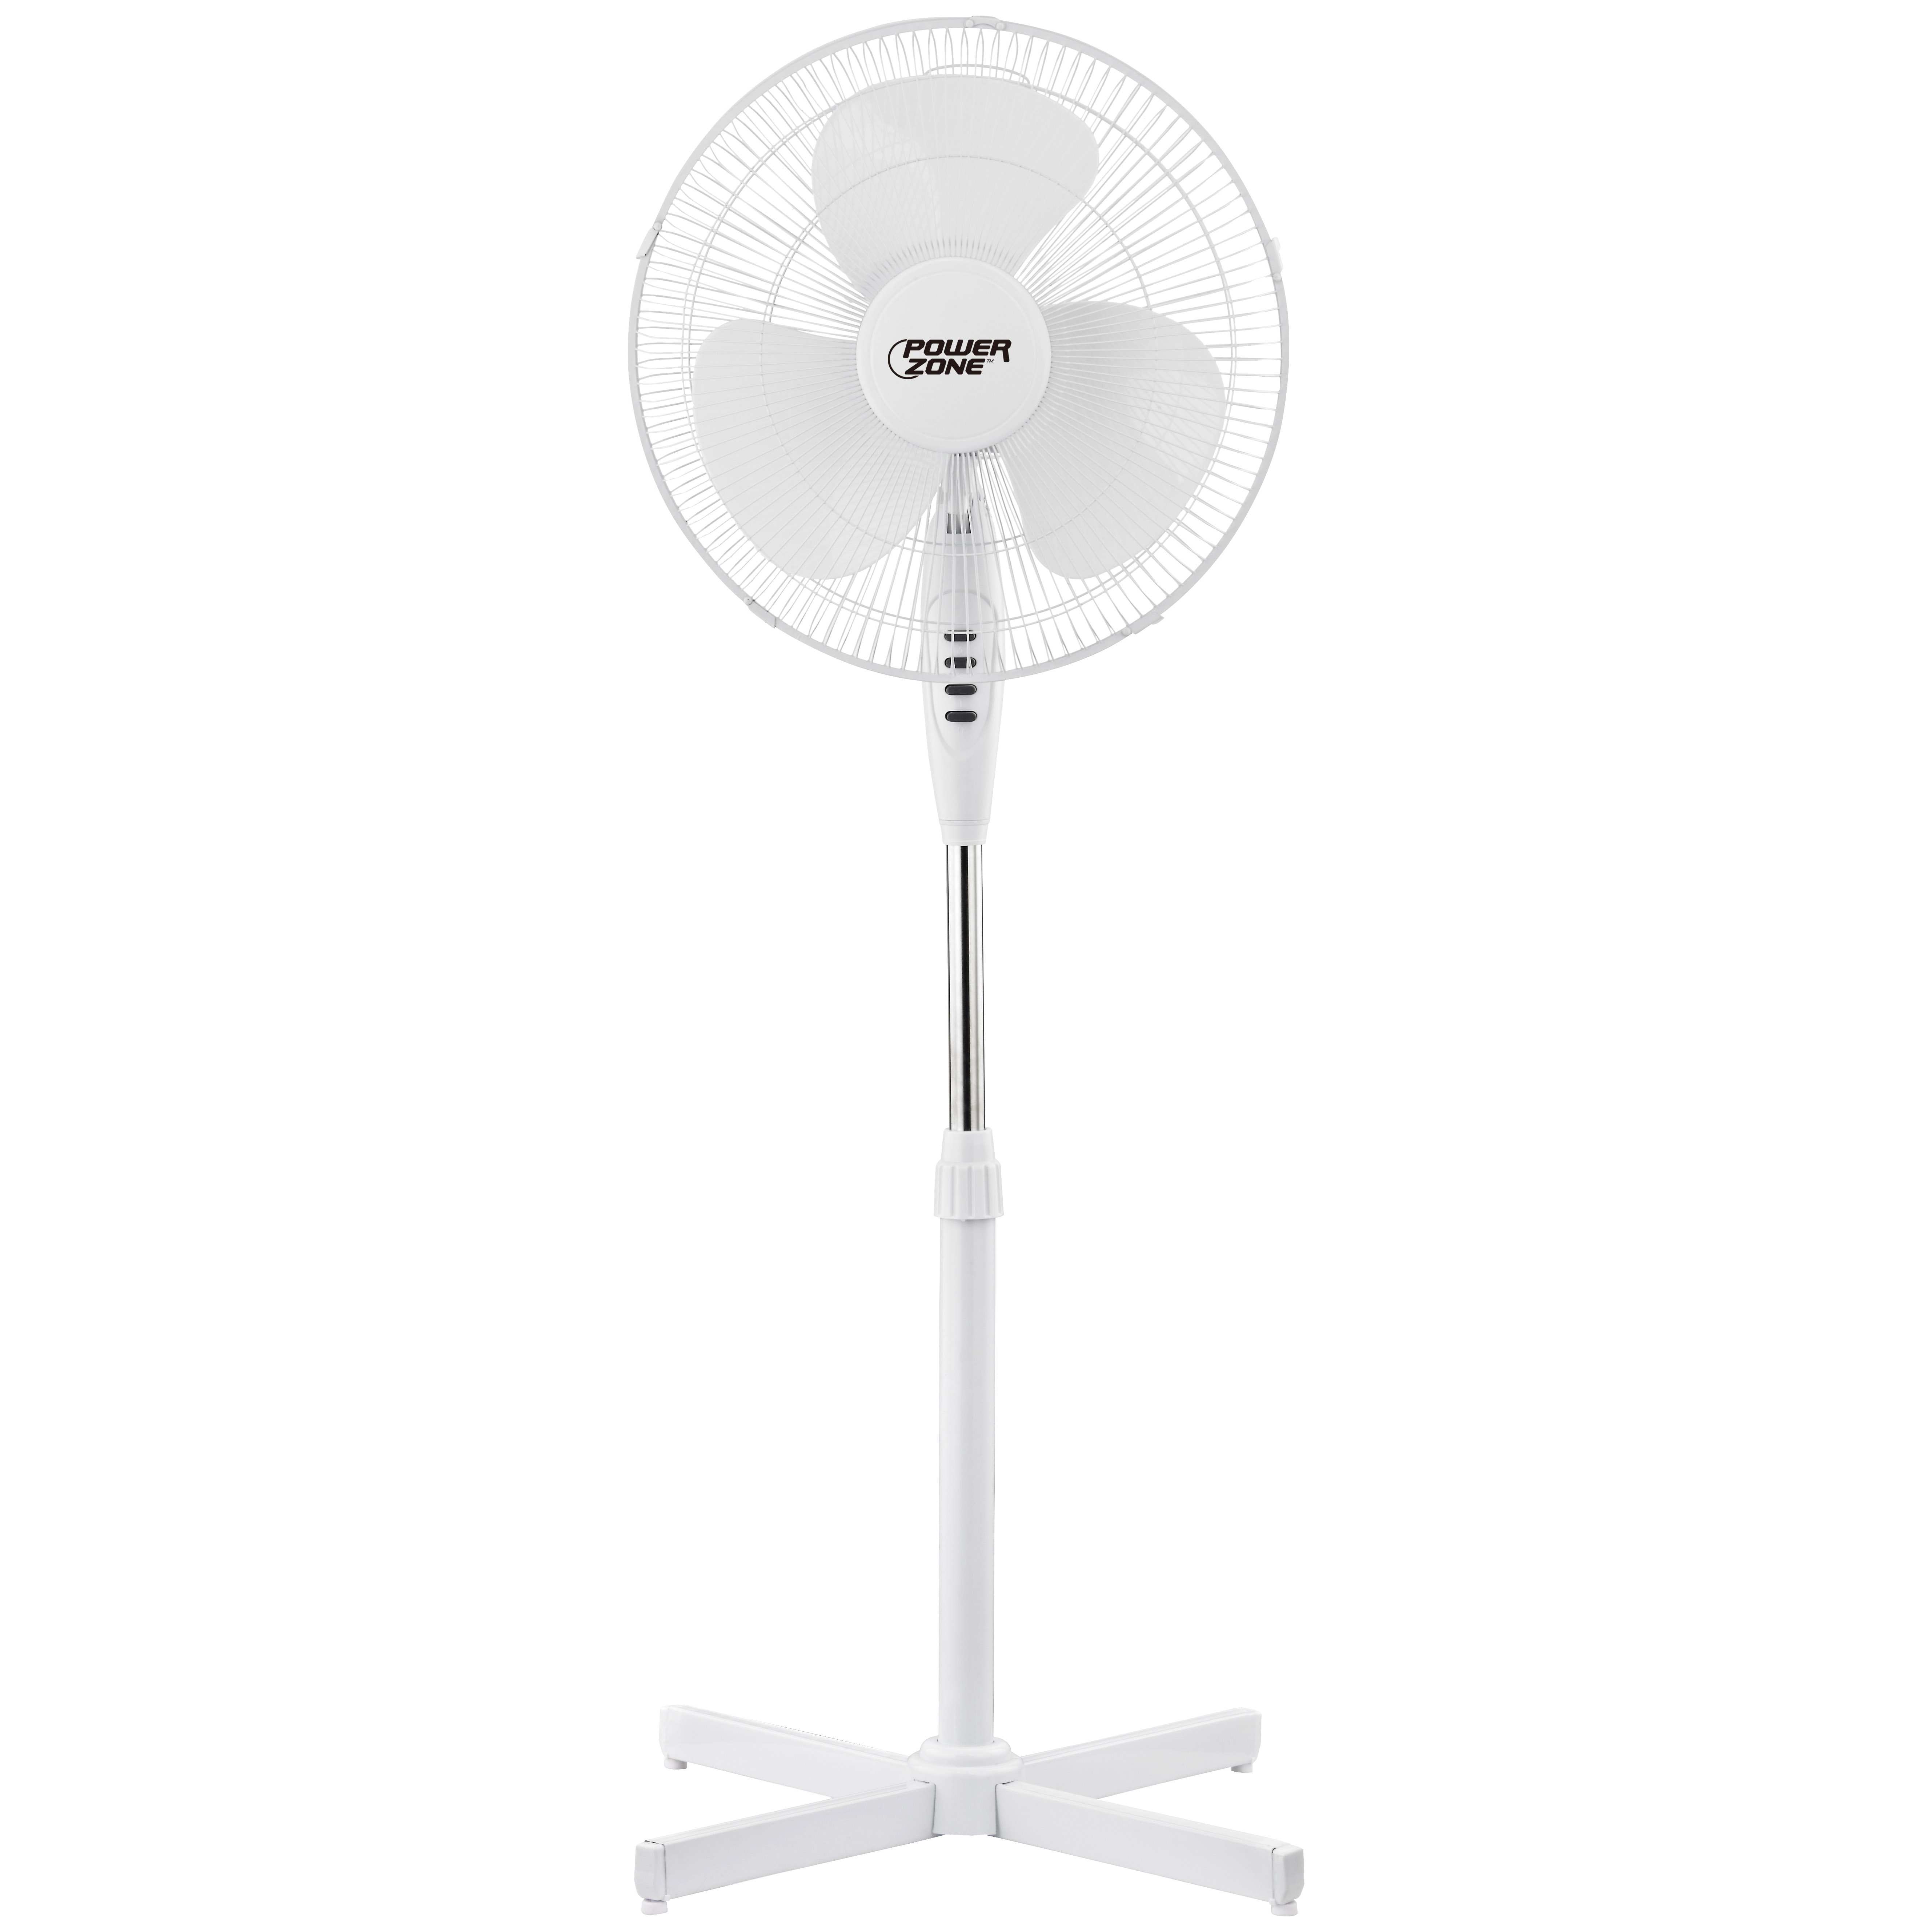 Picture of PowerZone FS-40E Oscillating Floor Fan, 120 V, 0.42 A, 90 deg Sweep, 16 in Dia Blade, 3-Blade, Plastic Blade